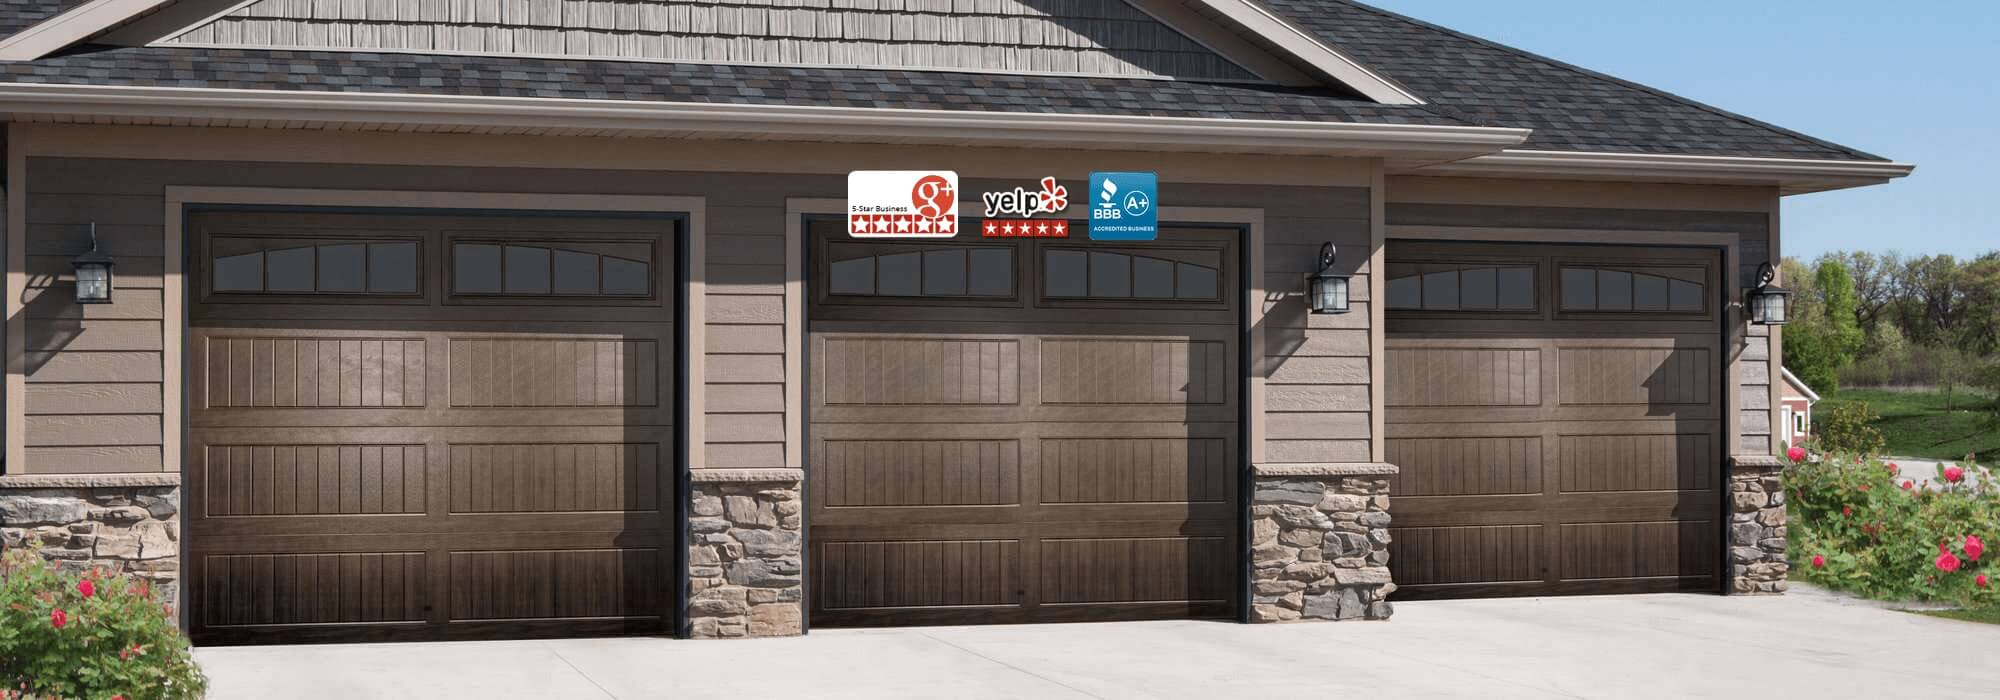 Genial Garage Door Repair Redmond WA | Same Day Service   CALL 24/7